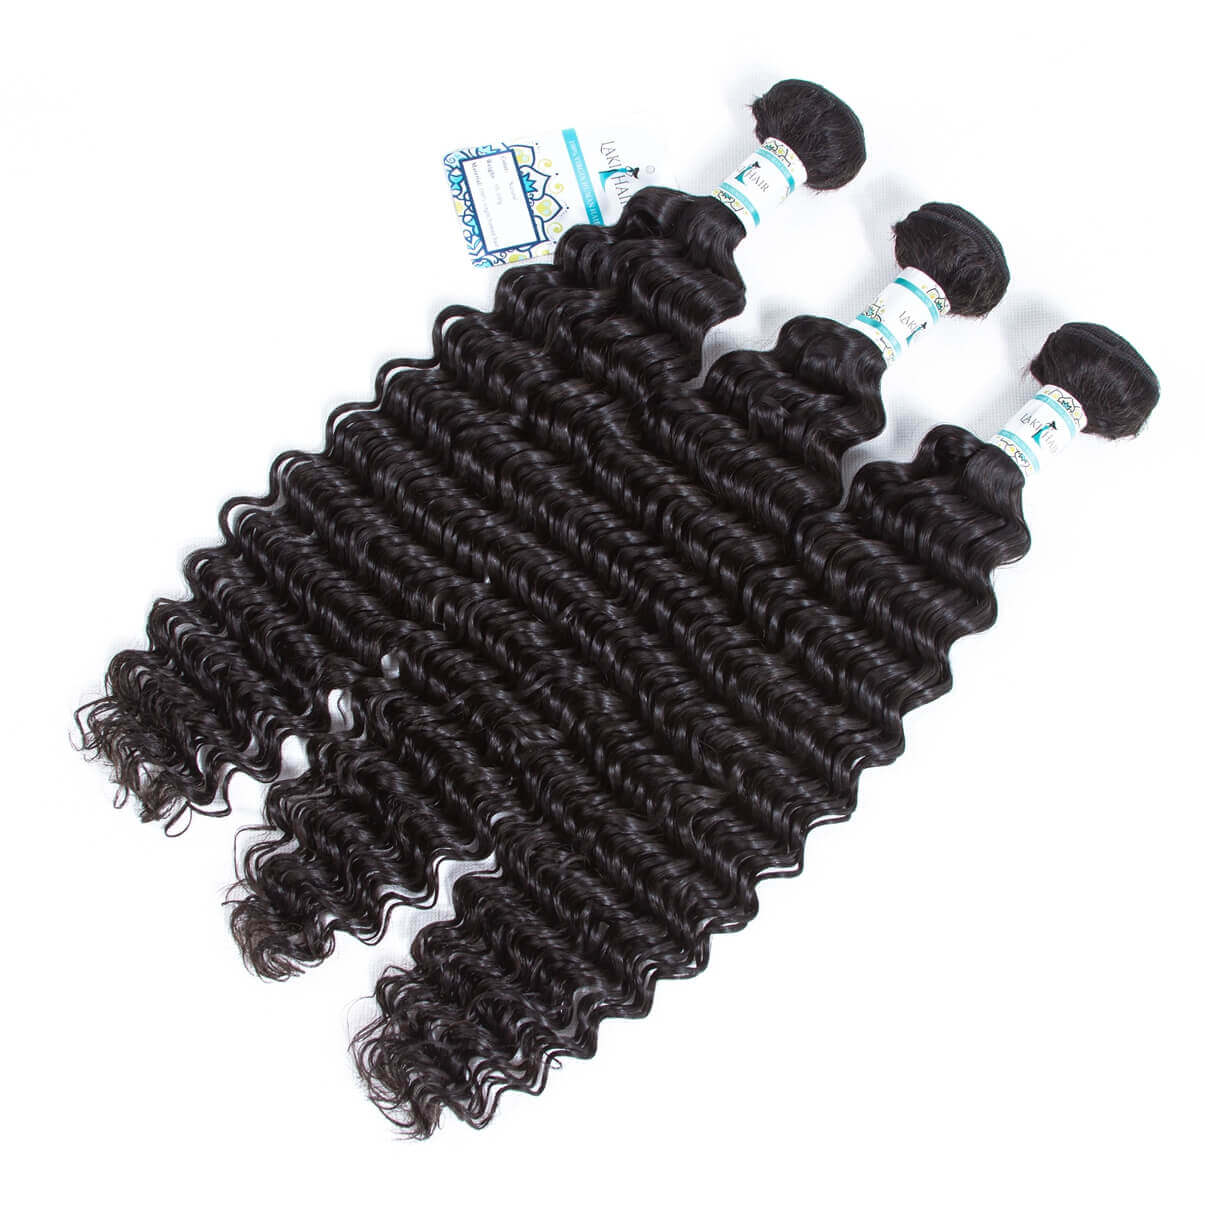 Lakihair 8A Brazilian Deep Wave Real Virgin Human Hair Bundles 3 Bundles Deals 100% Unprocessed Human Hair Weaving Soft Full Bundles